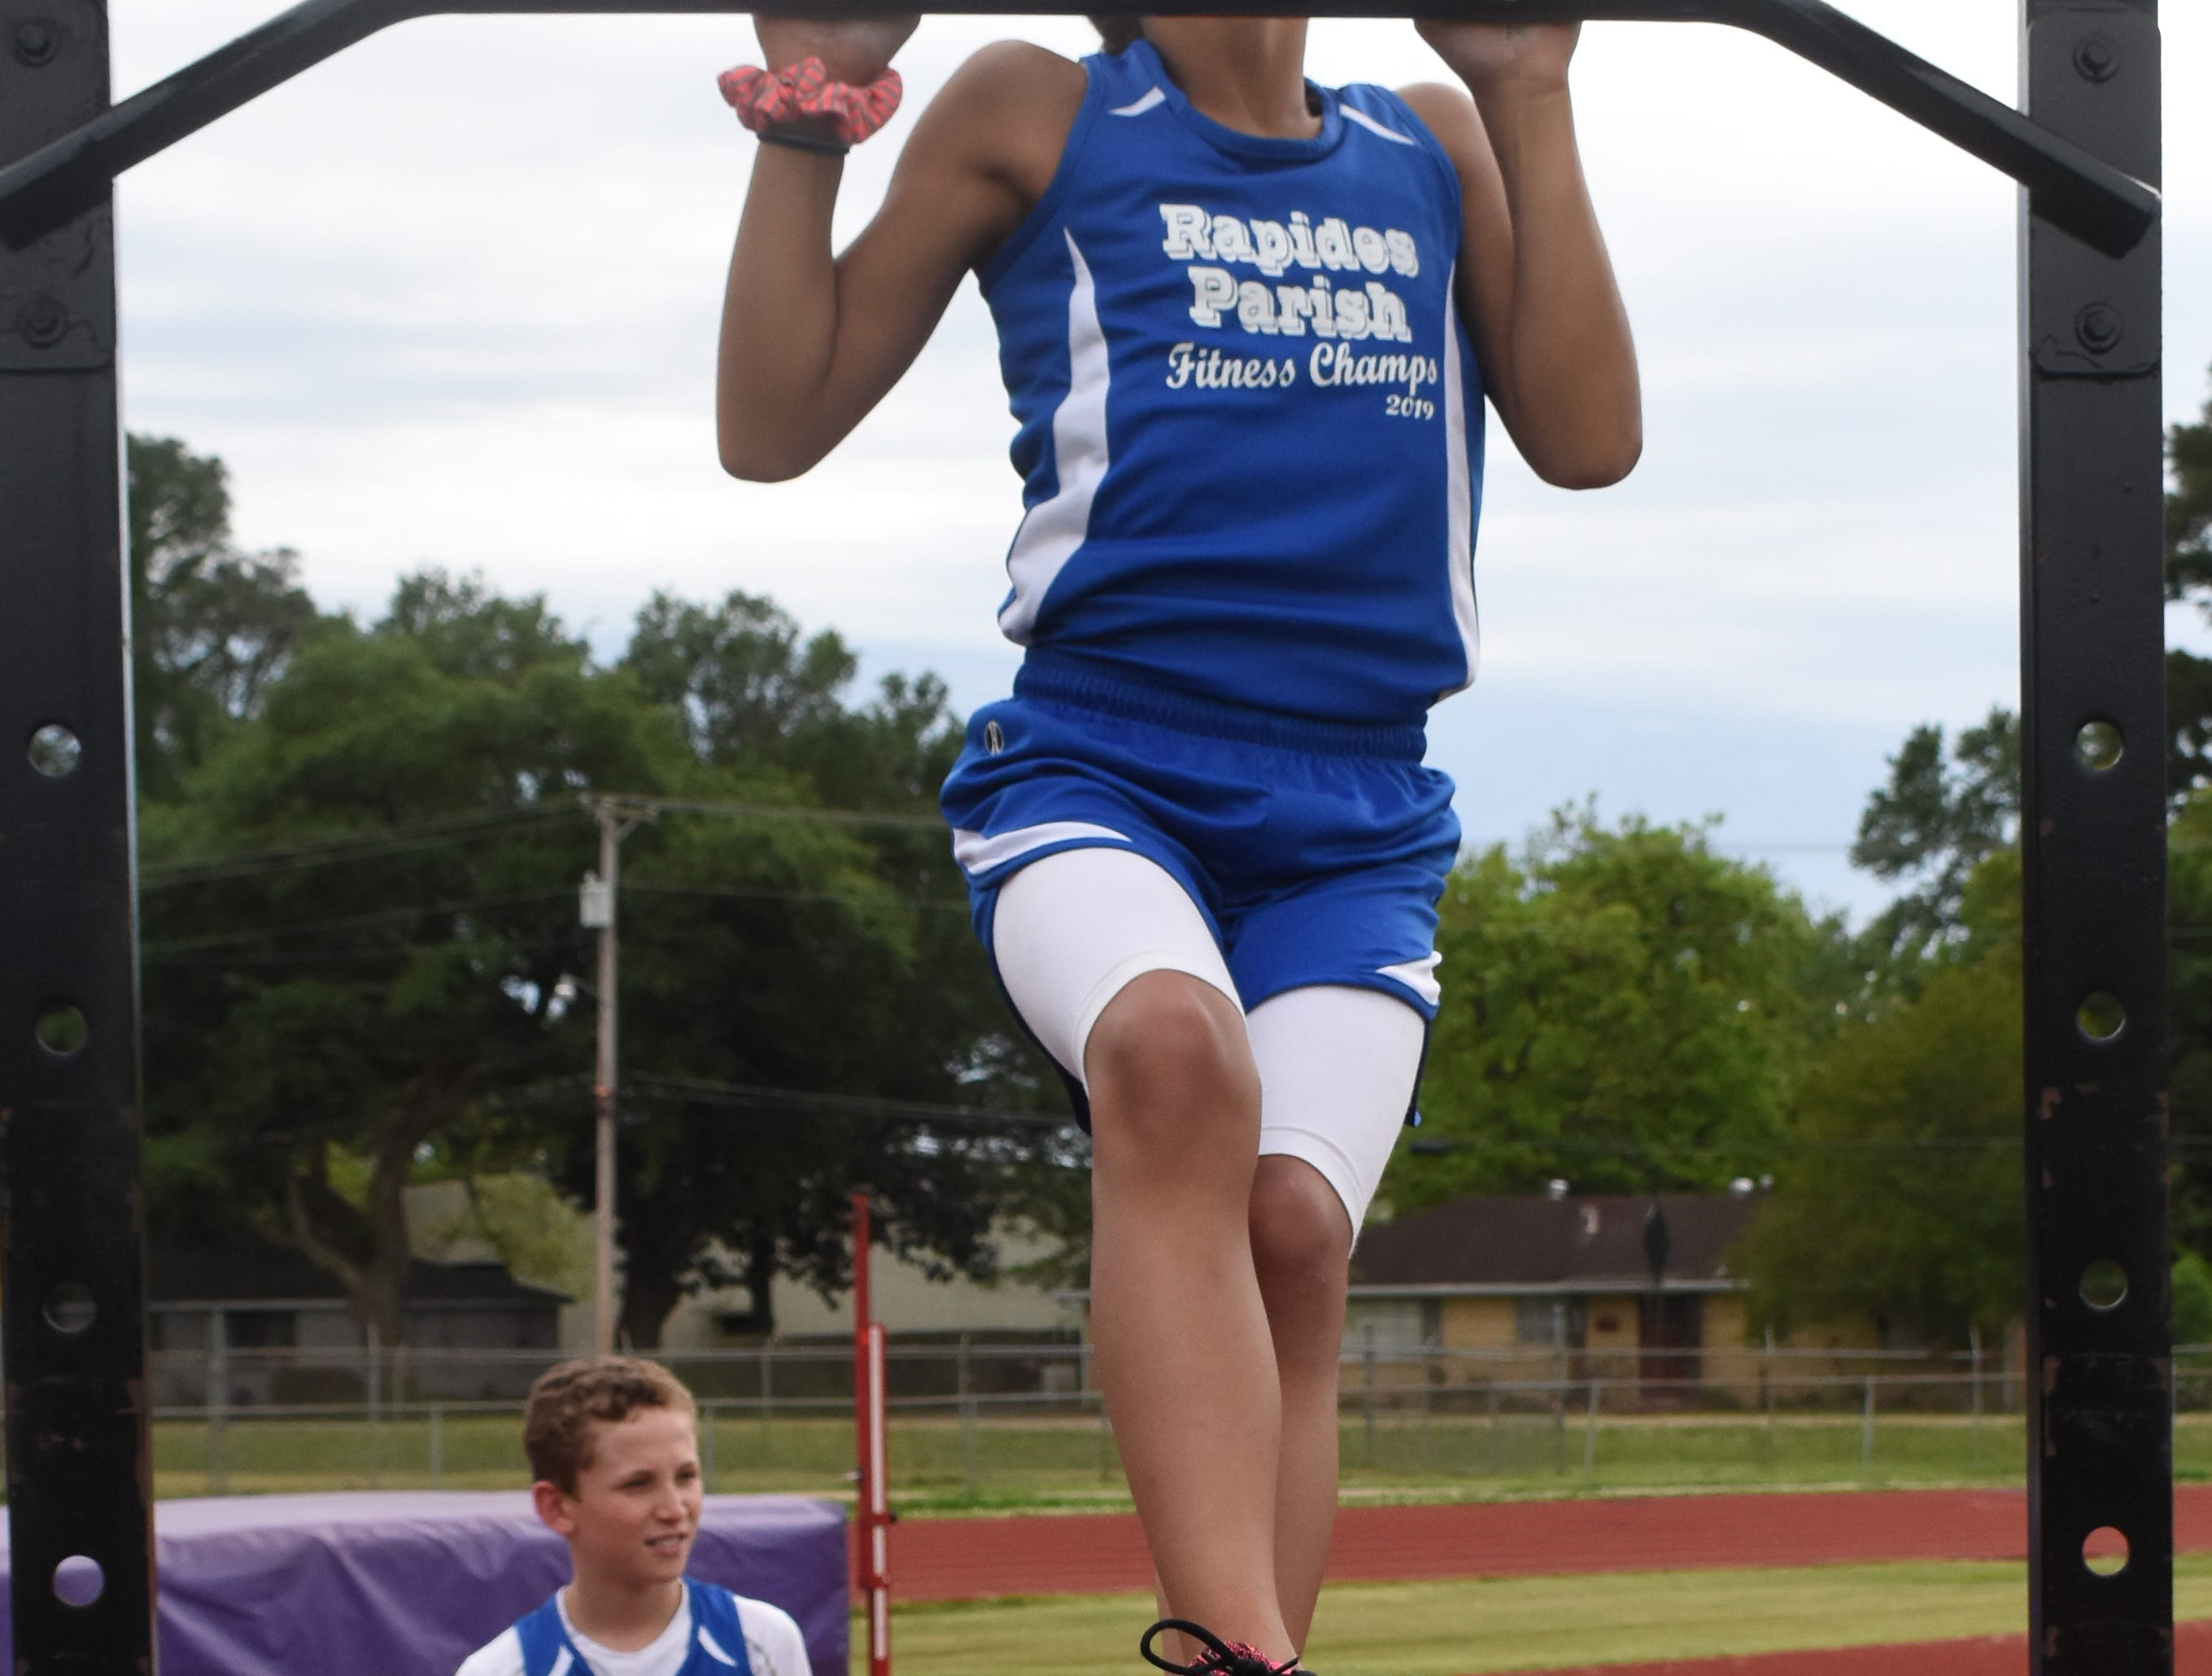 Madeline Davis of Nachman Elementary School does pull-ups. Madeline is part the 2019 Rapides Parish Fitness Team. Madeline and five other Rapides Parish elementary school students will compete in the 2019 State Championship Fitness Meet to be held Saturday, April 27, 2019 at Alexandria Senior High School. The meet is part of the Governor's Council on Fitness and Sports. Students from throughout Louisiana will compete in seven events: 50-yard dash, sit and reach, pull-ups,  shuttle run, curl-ups (sit-ups), standing long jump, and the 600-yard run. For the past three years, the Rapides Parish Fitness Team has placed first at the meet. Dean was the highest scoring boy last year and won the title of 2018 Mr. Fitness for the State of Louisiana. The meet will be from 10 a.m. to 2 p.m.